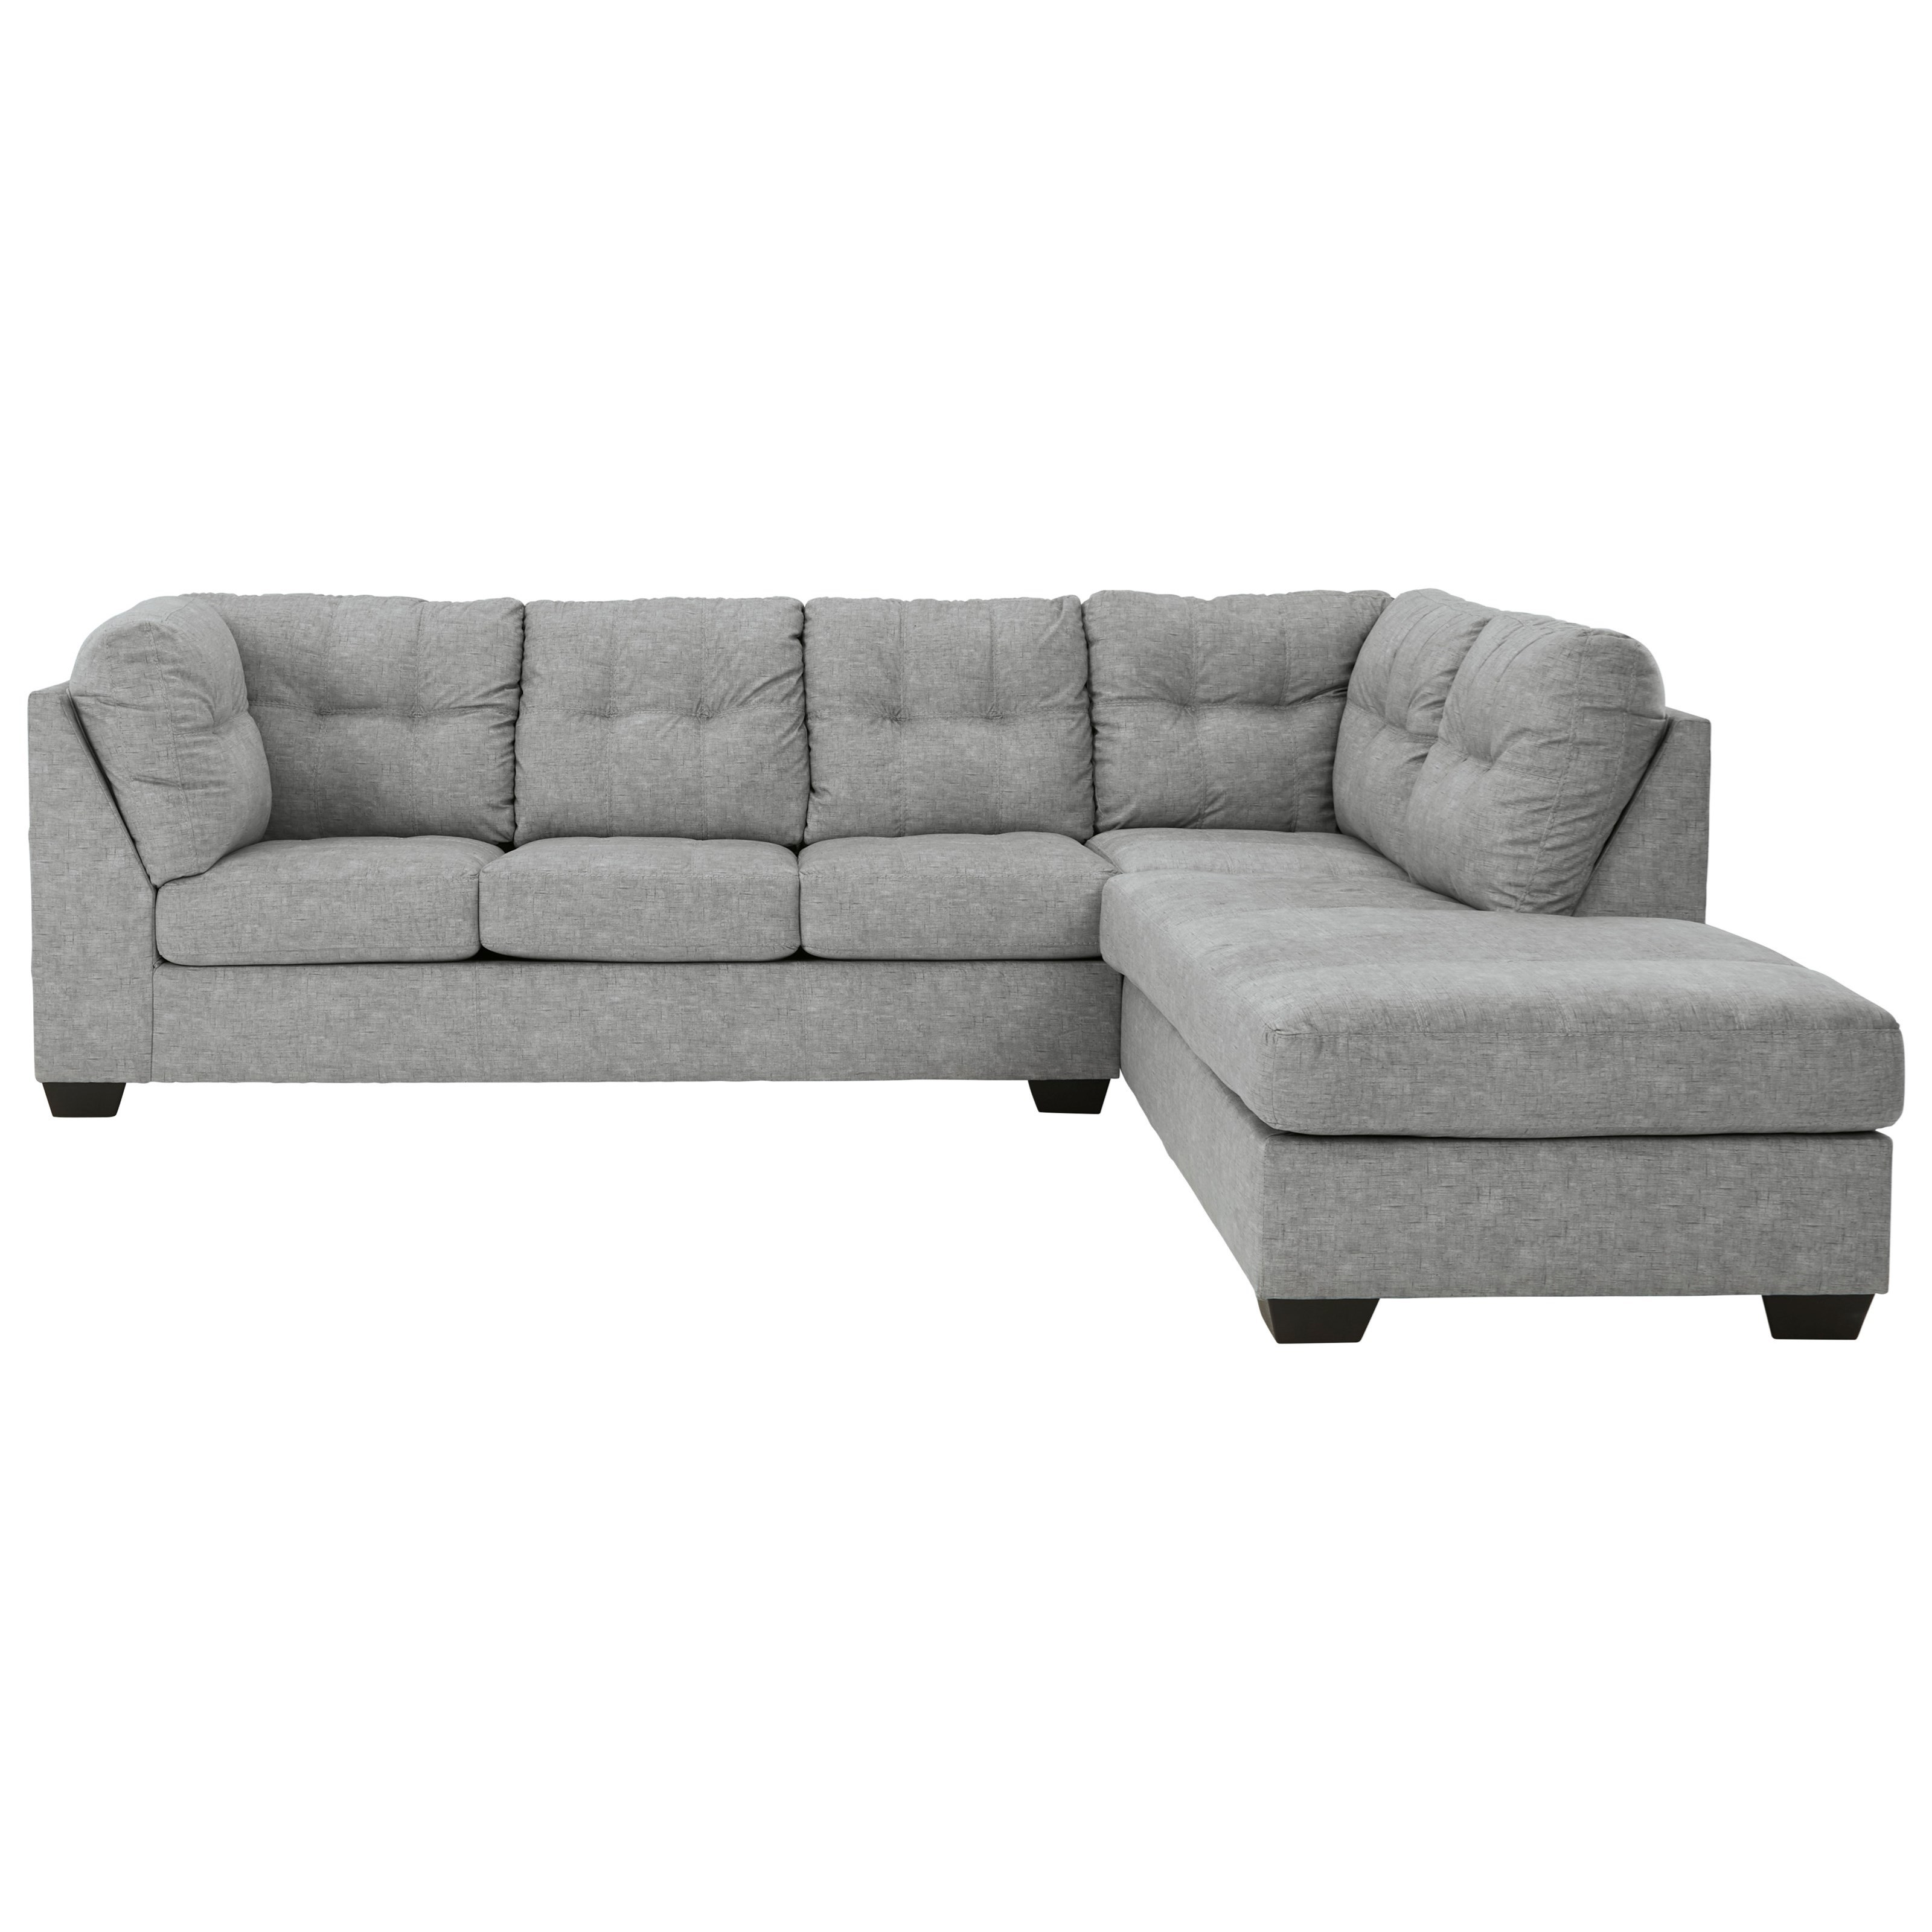 Falkirk 2-Piece Sectional with Chaise & Full Sleeper by Benchcraft at Northeast Factory Direct